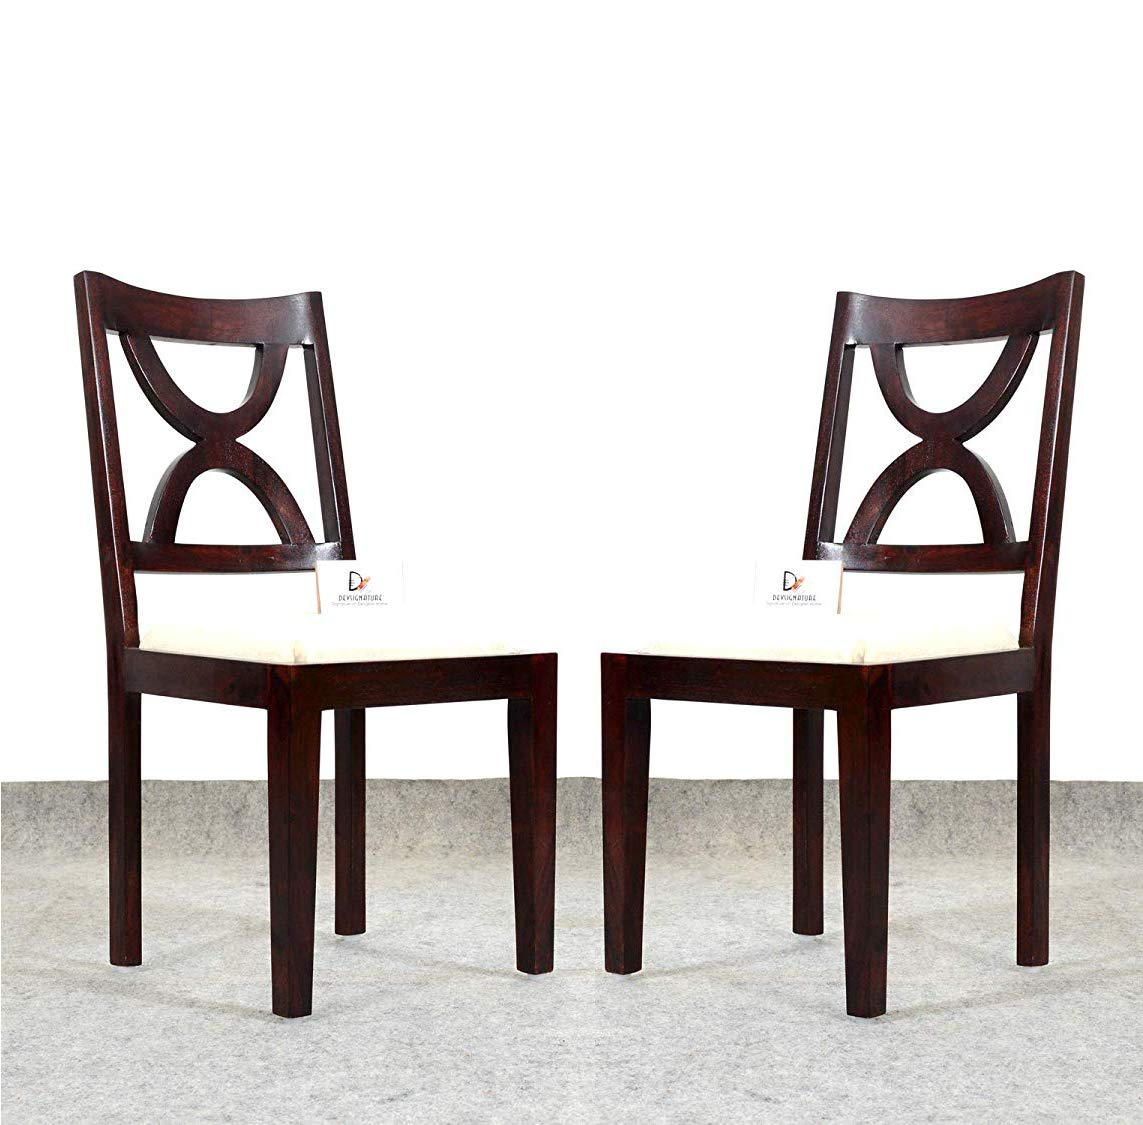 dining chairs online india 2021